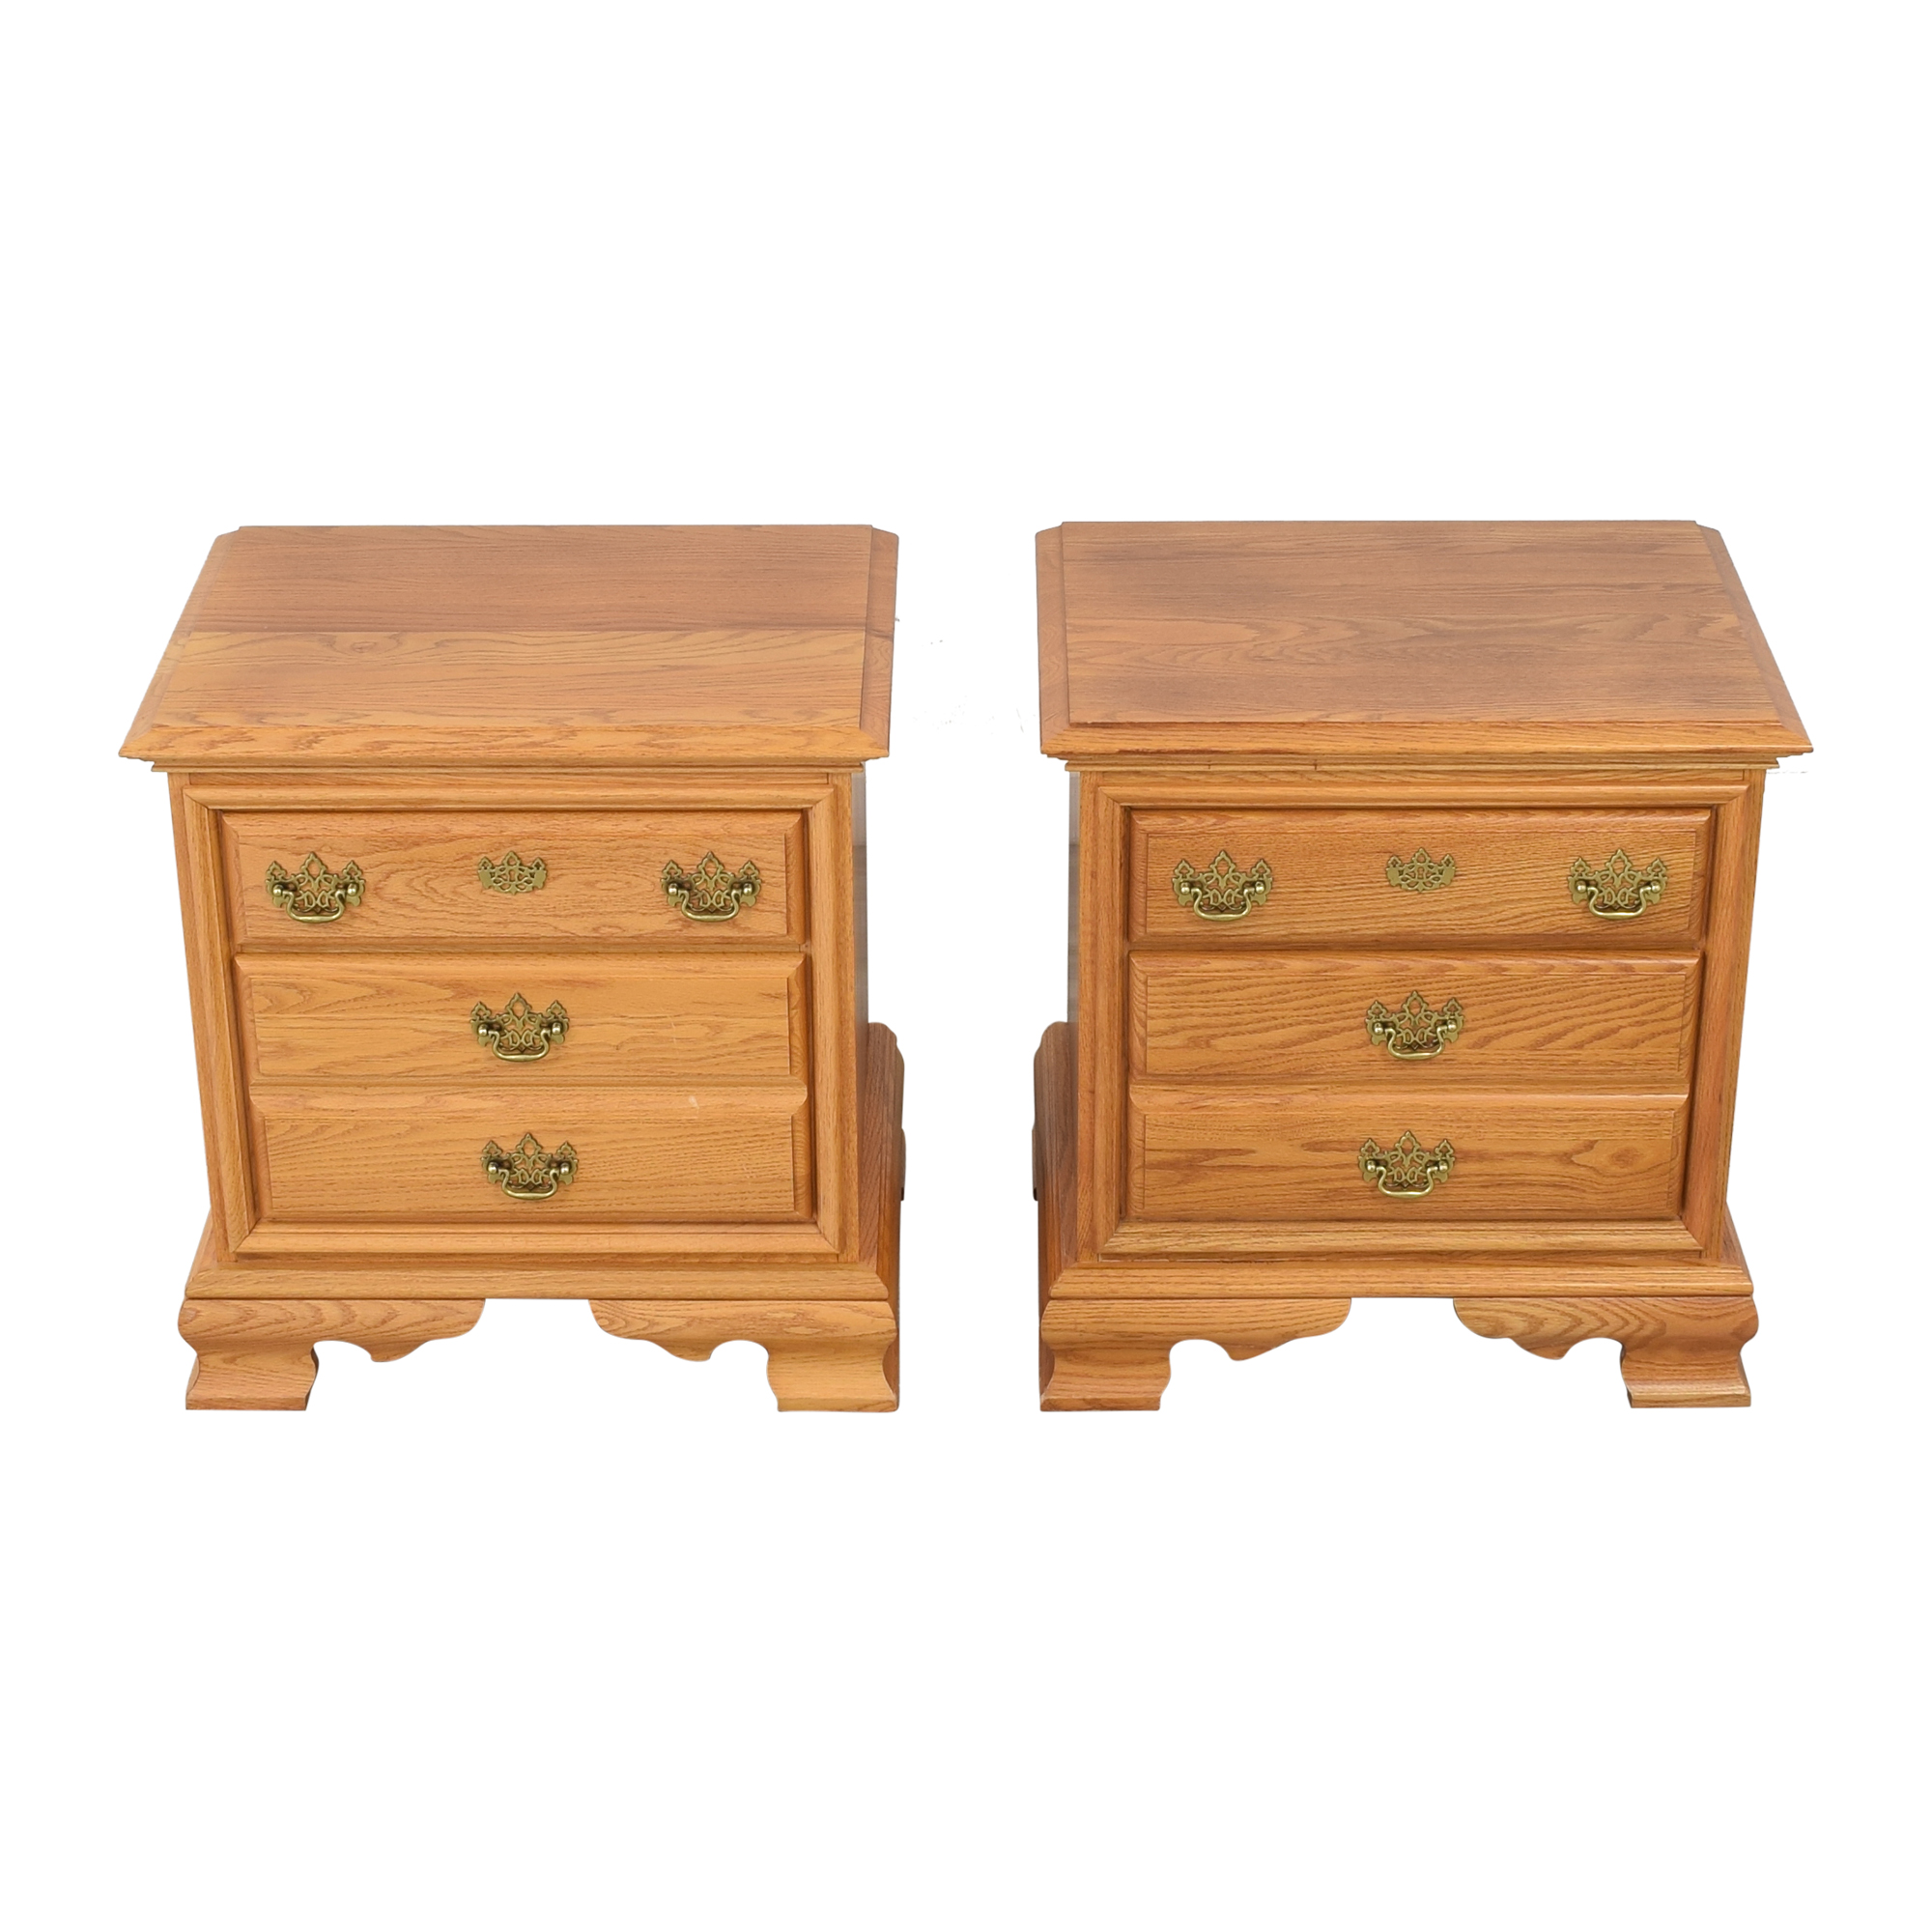 Masterfield Furniture Masterfield Furniture Two Drawer End Tables ct